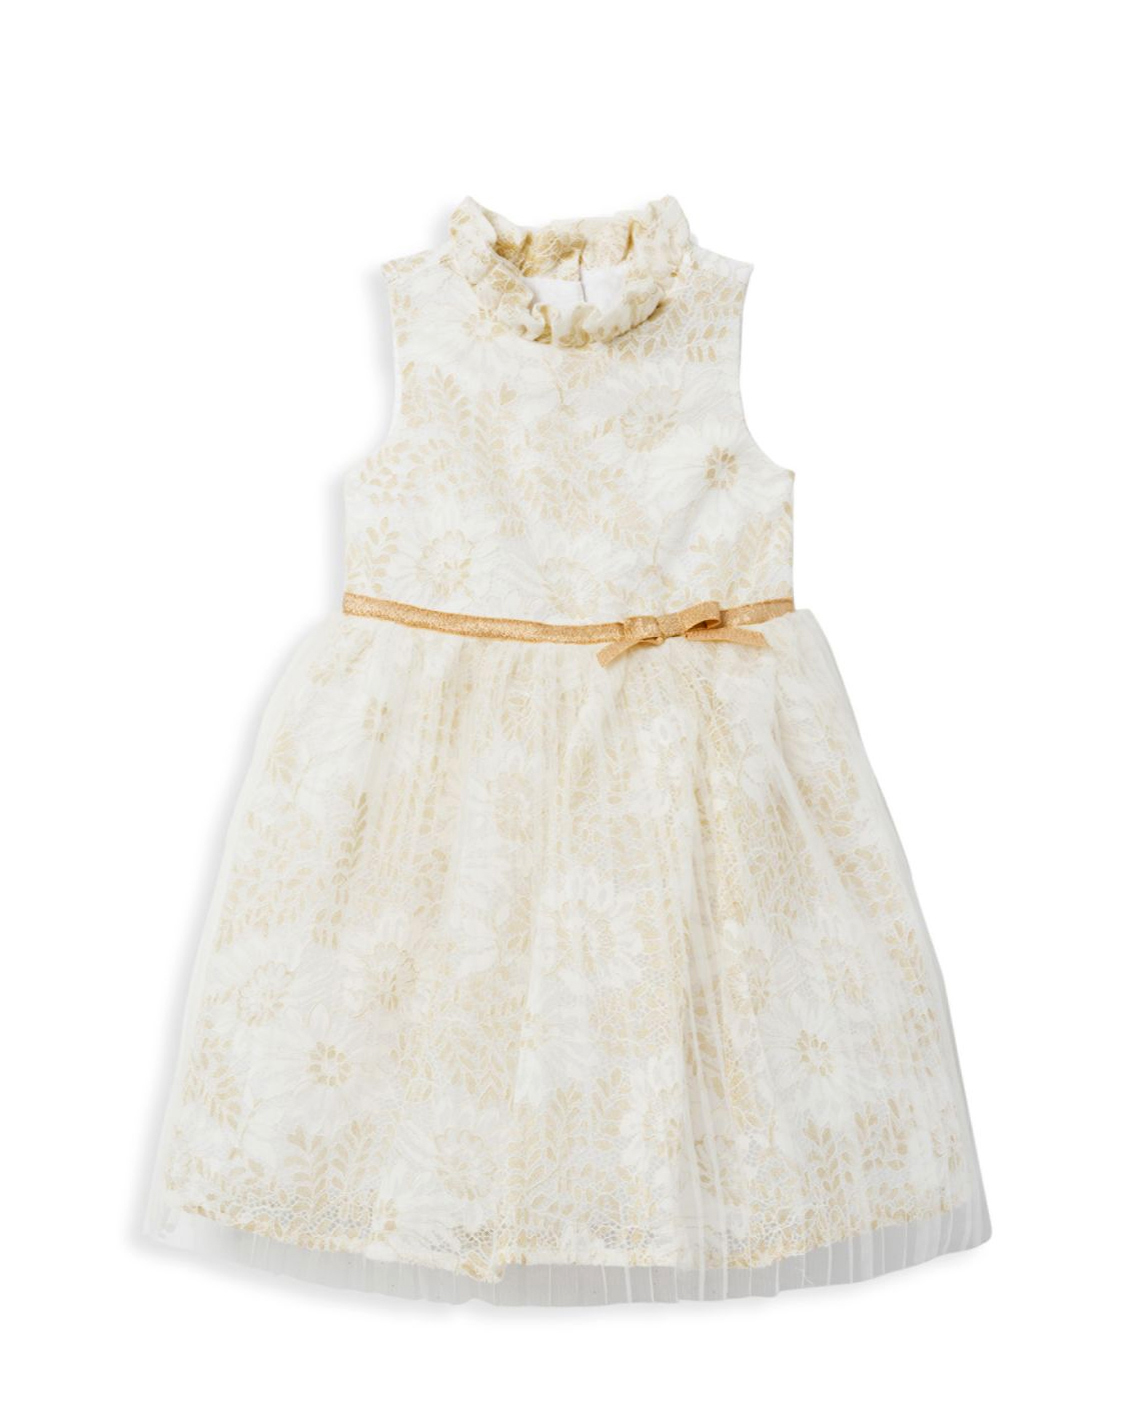 winter flower girl white and gold sleeveless dress with ruffled modneck